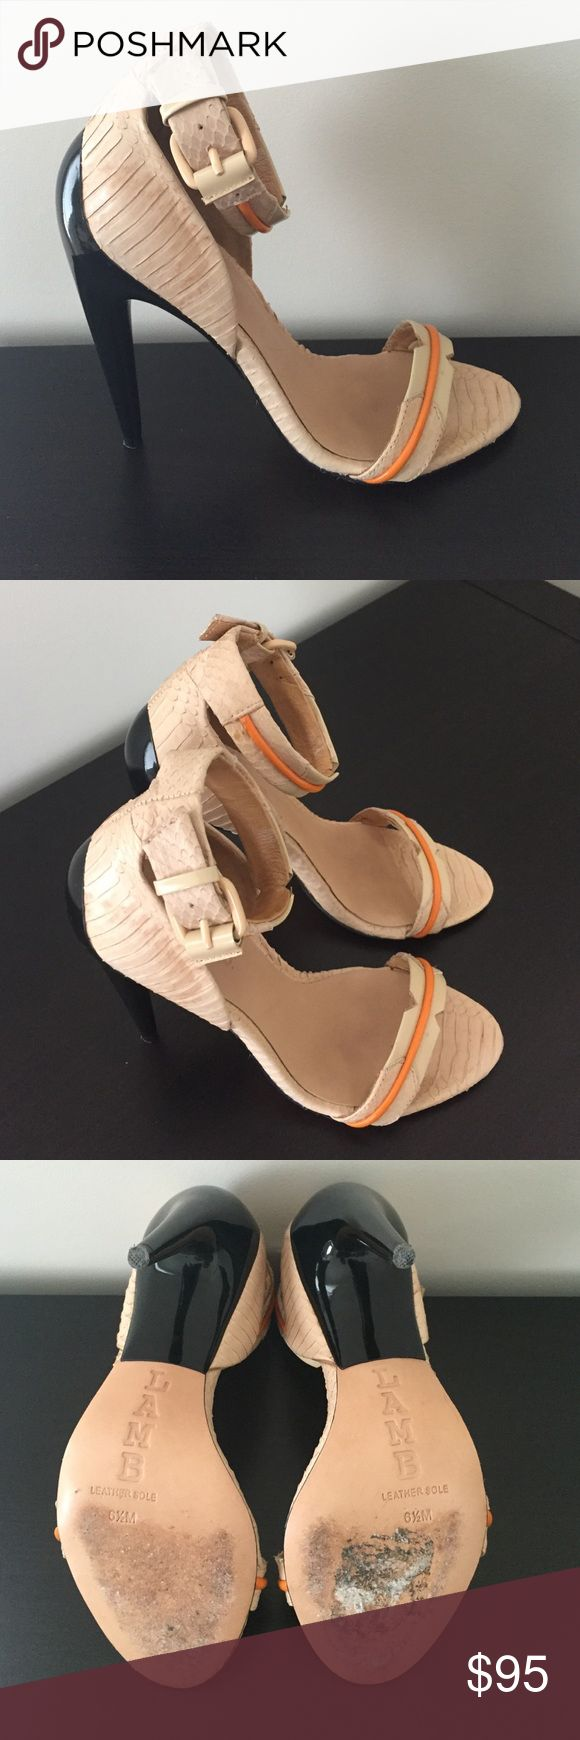 Nude snake skin LAMB shoes Super stylish and perfect for summer! Nude snakeskin leather with an orange detail and black heal shoes. Made by LAMB. Size 6.5. Fit true to size. Worn lightly and in great condition. Lamb Shoes Heels